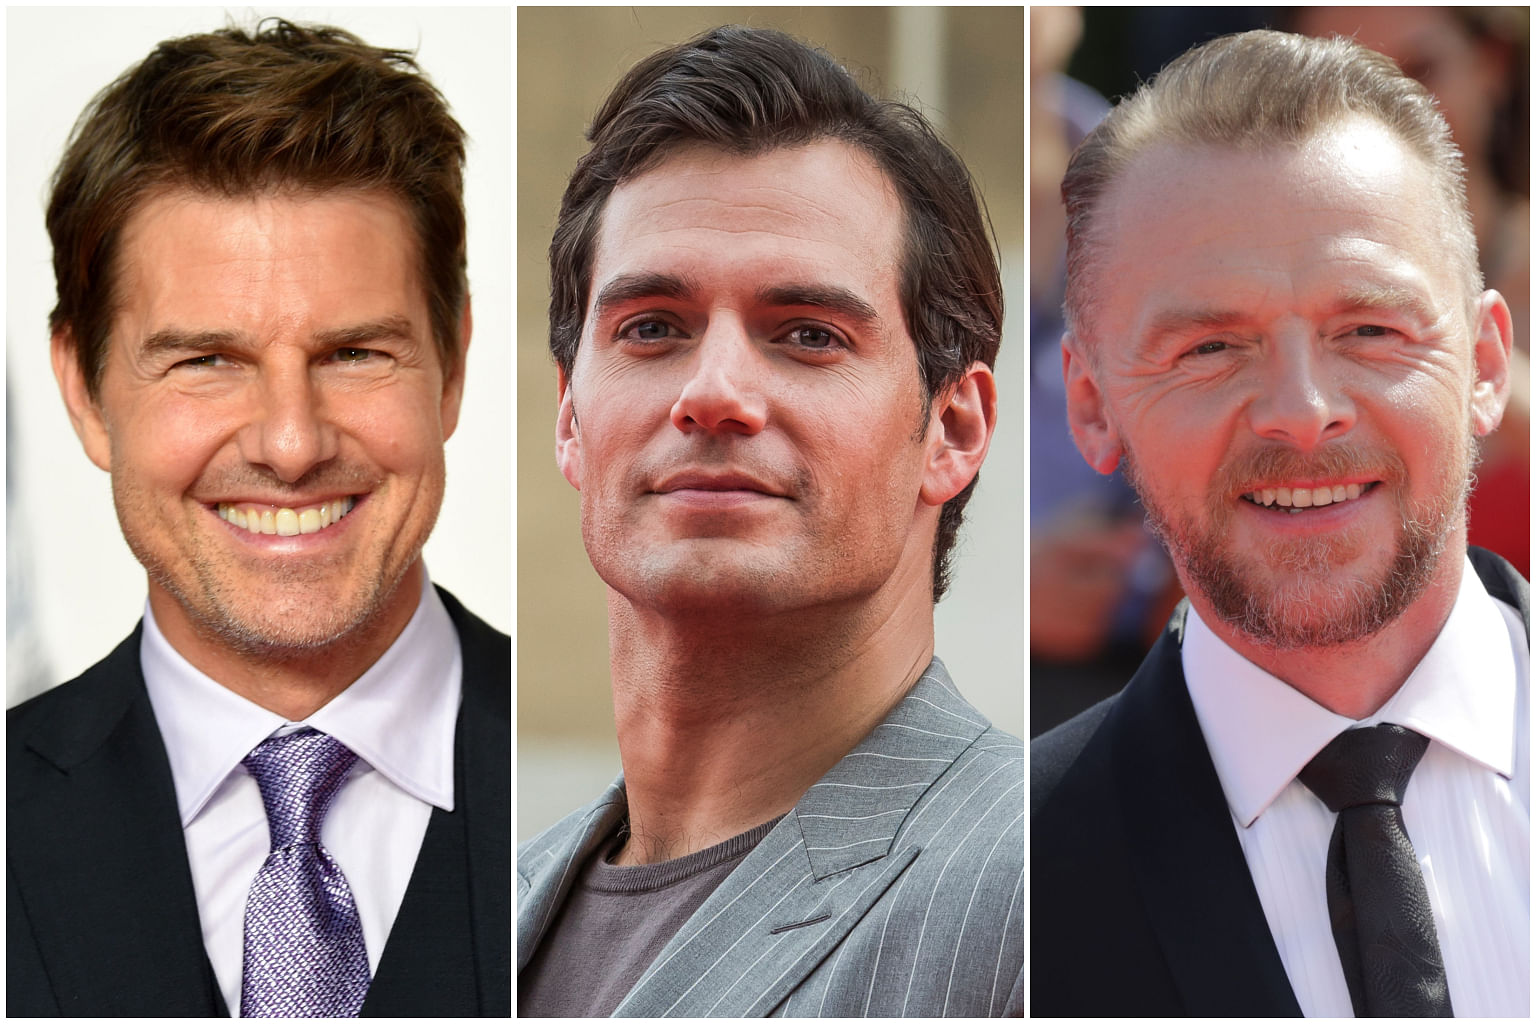 Tom cruise henry cavill simon pegg to appear on running man tom cruise henry cavill simon pegg to appear on running man entertainment news top stories the straits times stopboris Image collections